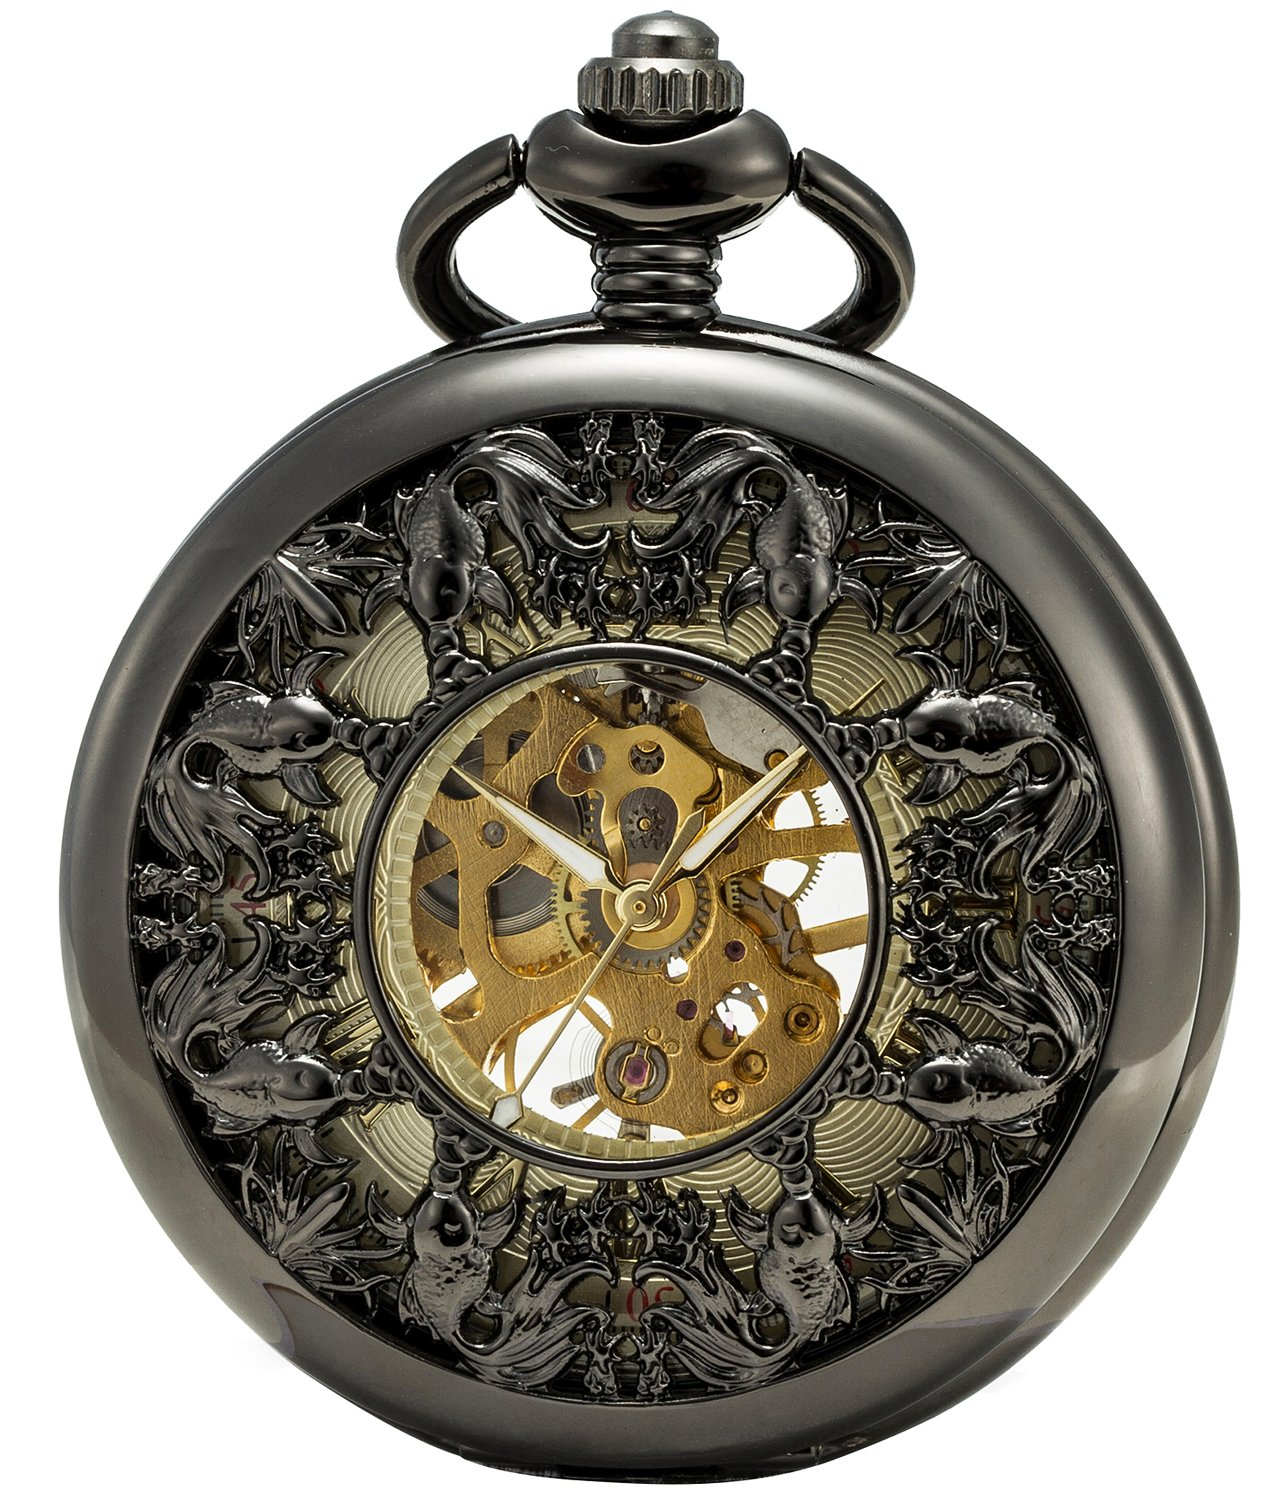 SEWOR Grace Koi Skeleton Pocket Watch Black Mechanical Hand Wind with Leather Gift Box (Black) by SEWOR (Image #1)